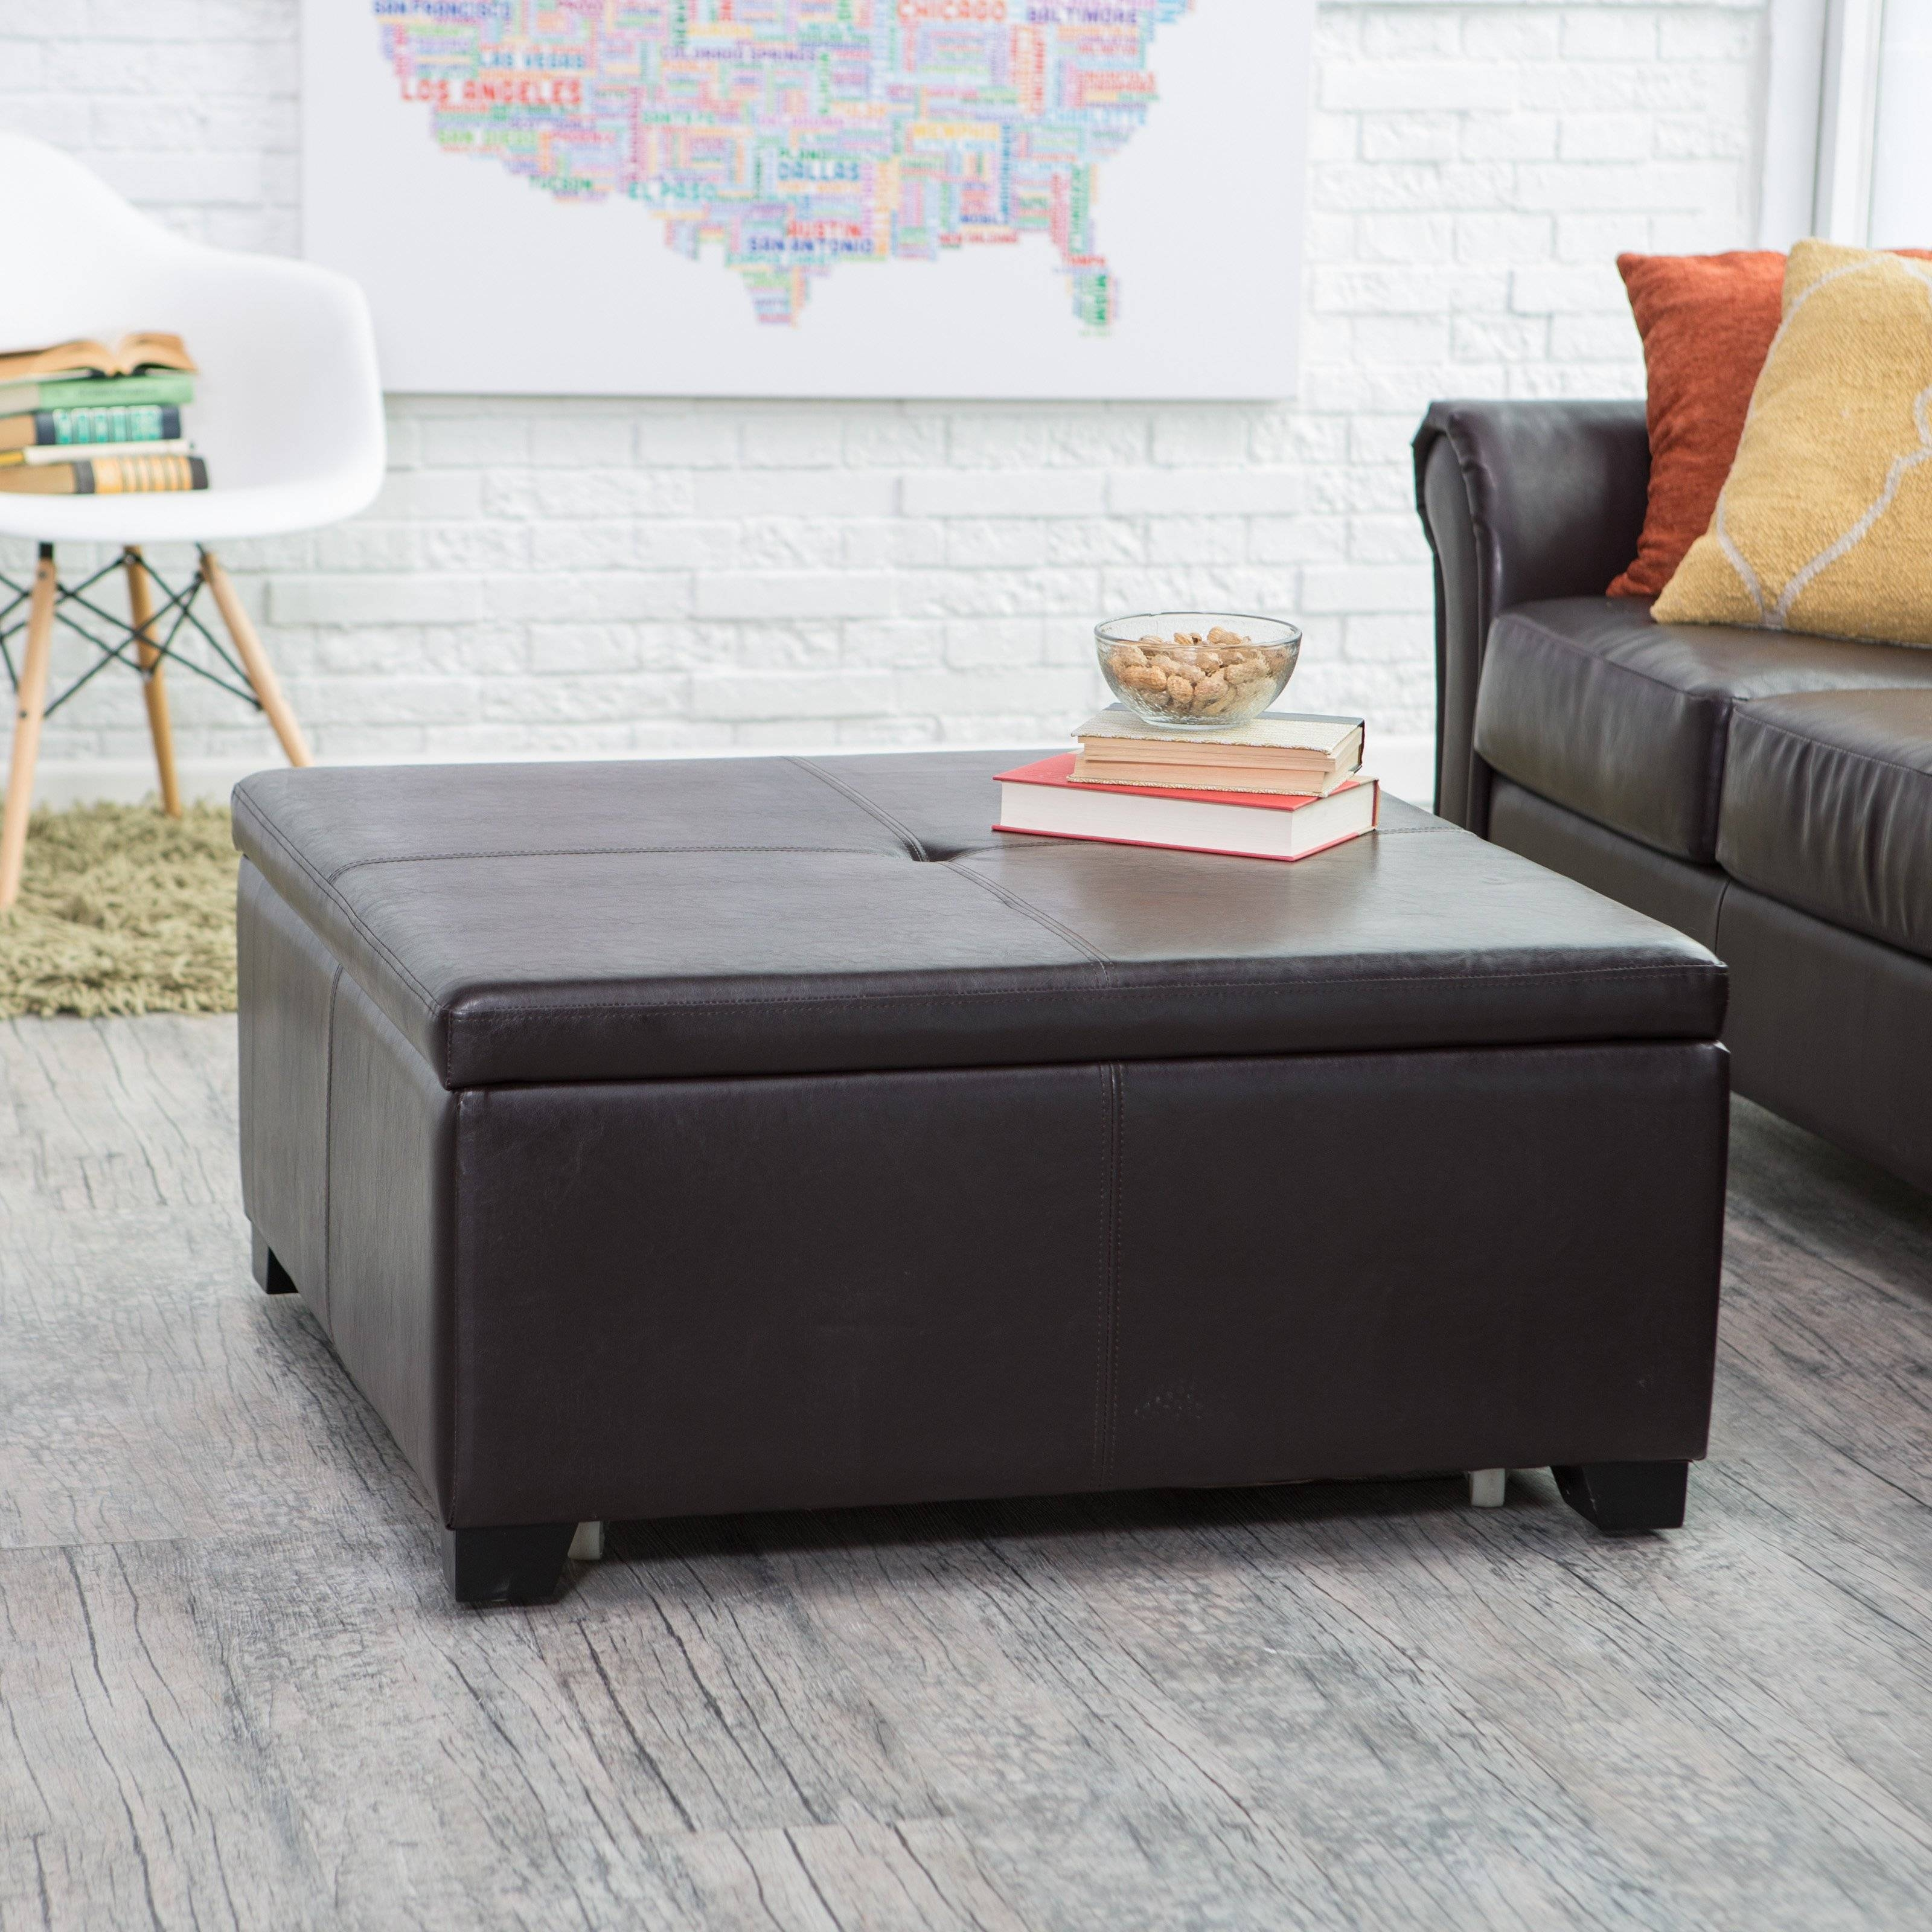 Brown Leather Coffee Table Storage Ottoman | Coffee Tables Decoration With Regard To Brown Leather Ottoman Coffee Tables (View 11 of 30)